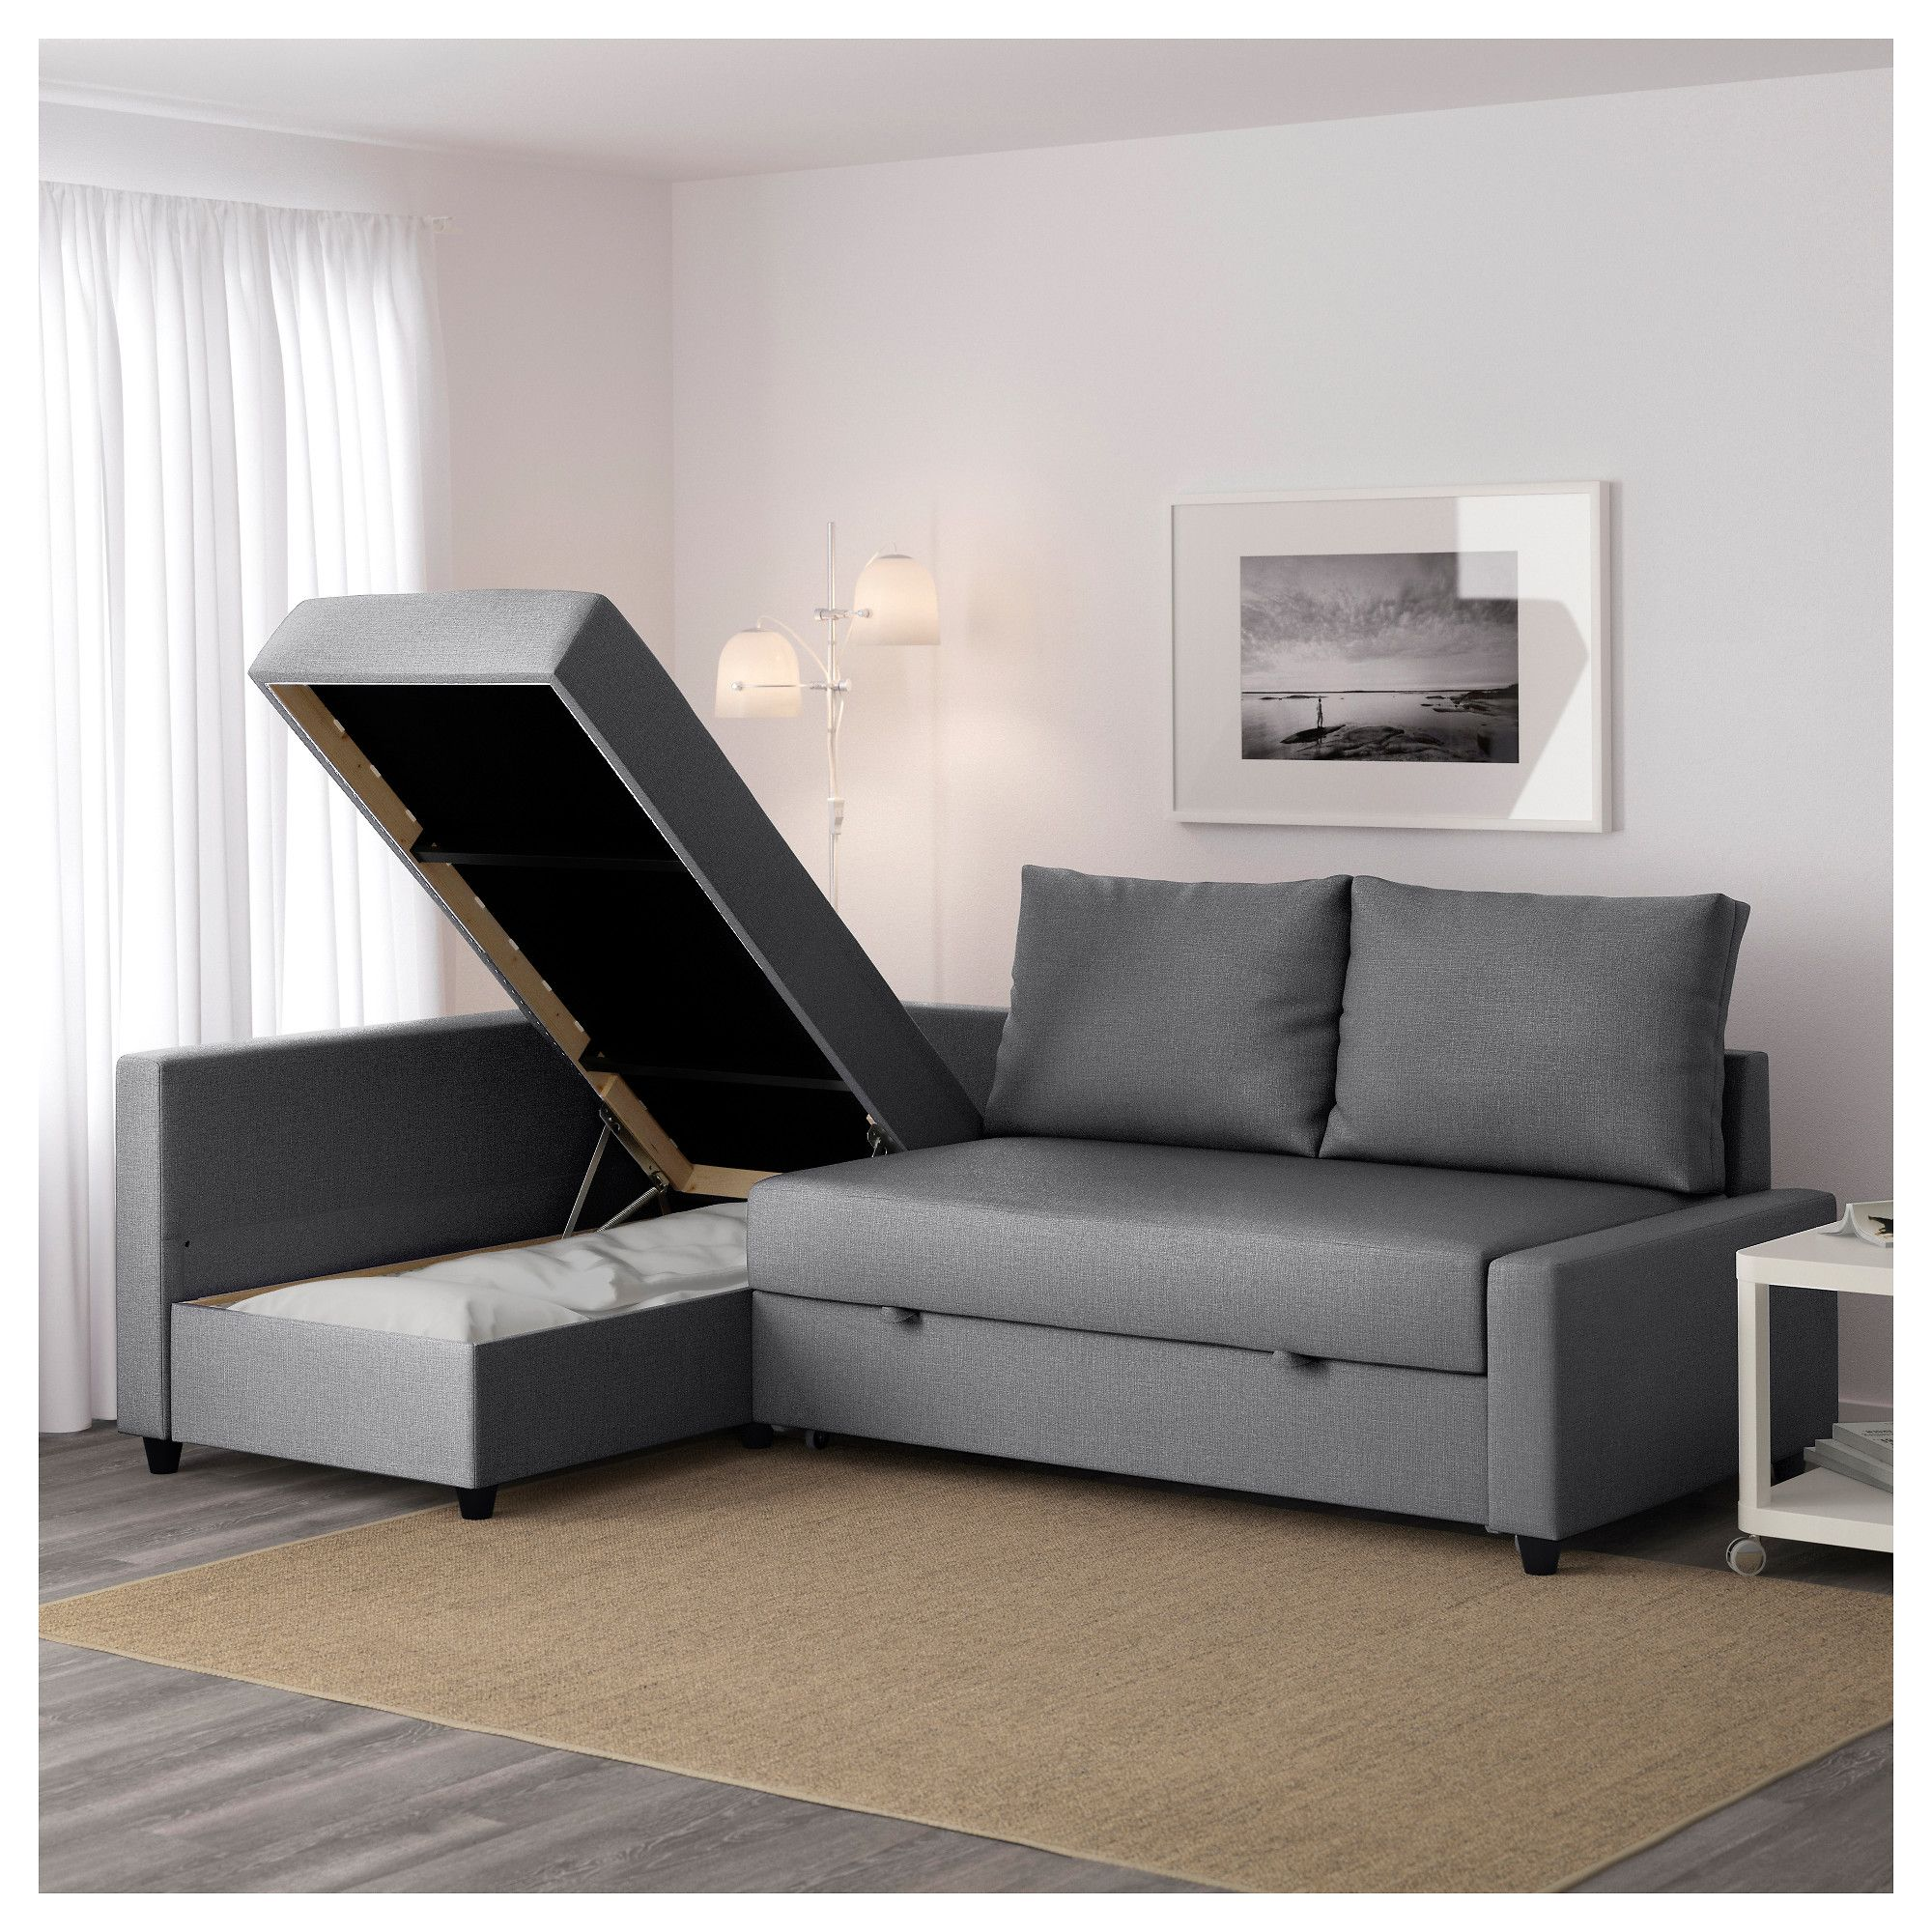 Friheten Skiftebo Dark Grey Corner Sofa Bed With Storage Ikea Sofa Bed With Chaise Corner Sofa Bed With Storage Sofa Bed With Storage